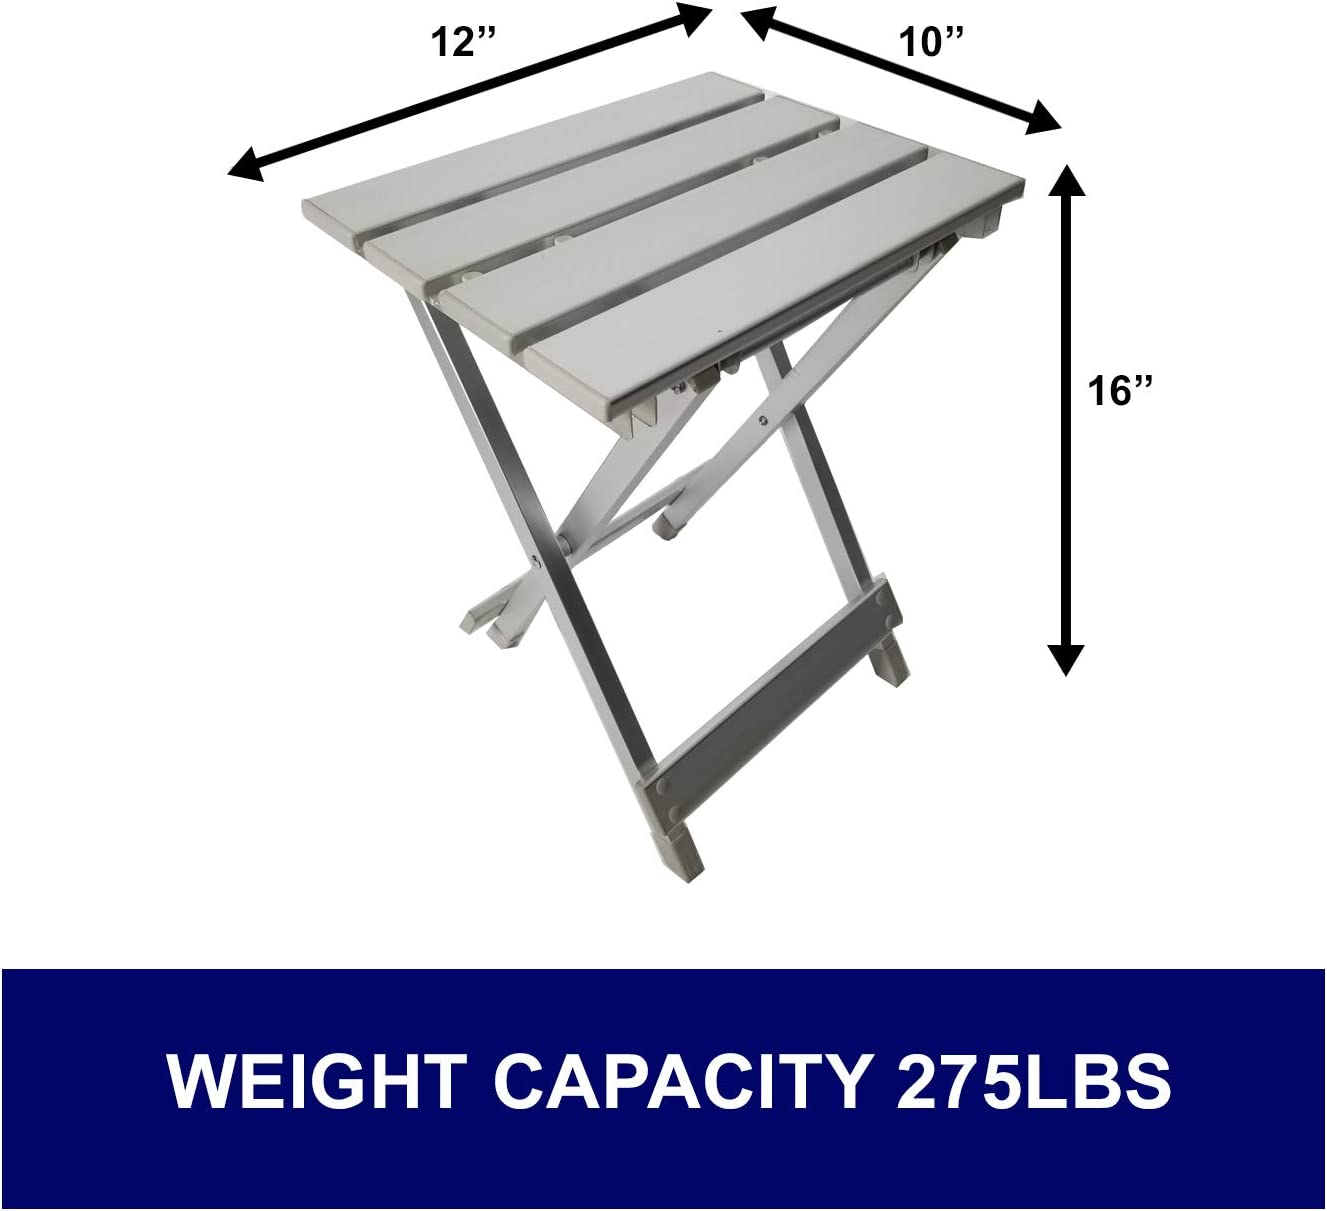 Lightweight Designed in USA Suitcase Style Design Made of Military Grade Aluminum Heavy Duty 5 Years Warranty Oasis Raptor Table and Two Padded Chairs Combo